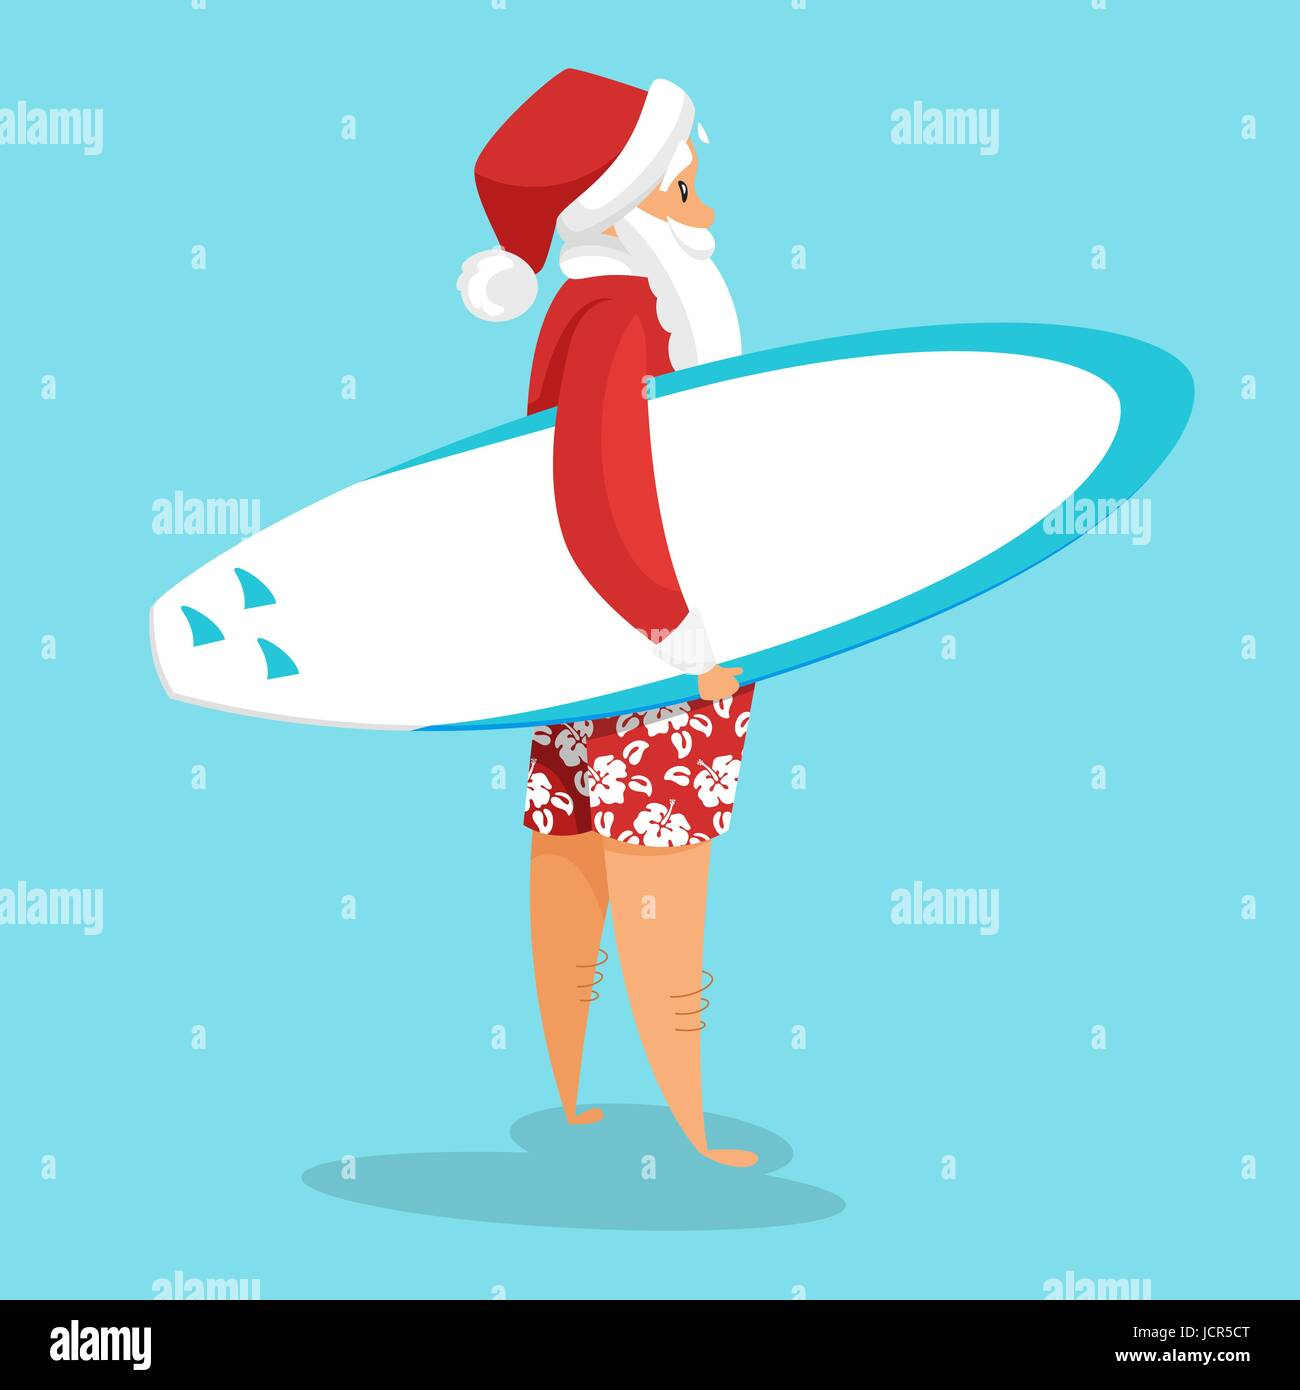 Vector cartoon style illustration of santa surfer holiday vector cartoon style illustration of santa surfer holiday greeting card template isolated on blue background kristyandbryce Image collections